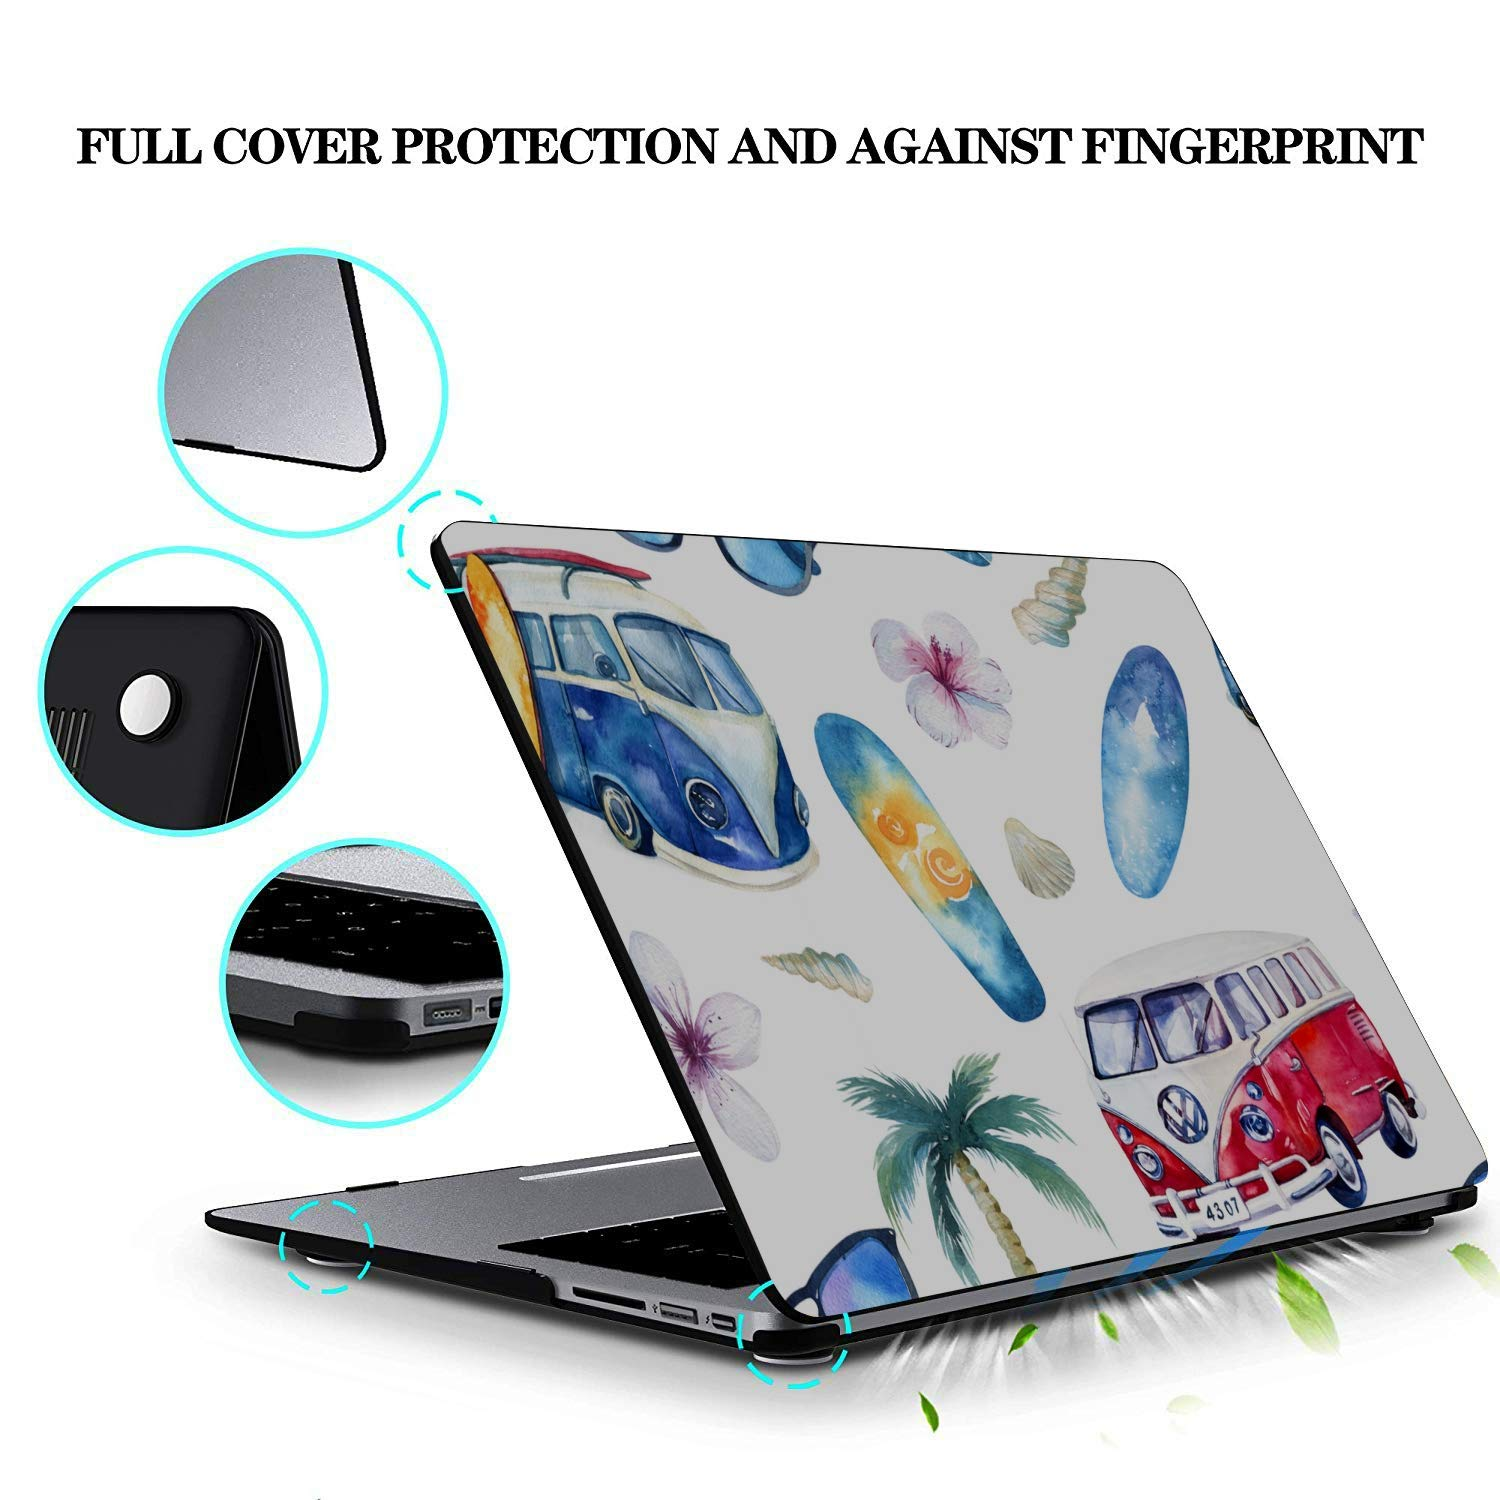 Laptop Cases Summer Retrocar Beach Palm Tree Plastic Hard Shell Compatible Mac Air 11 Pro 13 15 15 Inch MacBook Case Protection for MacBook 2016-2019 Version